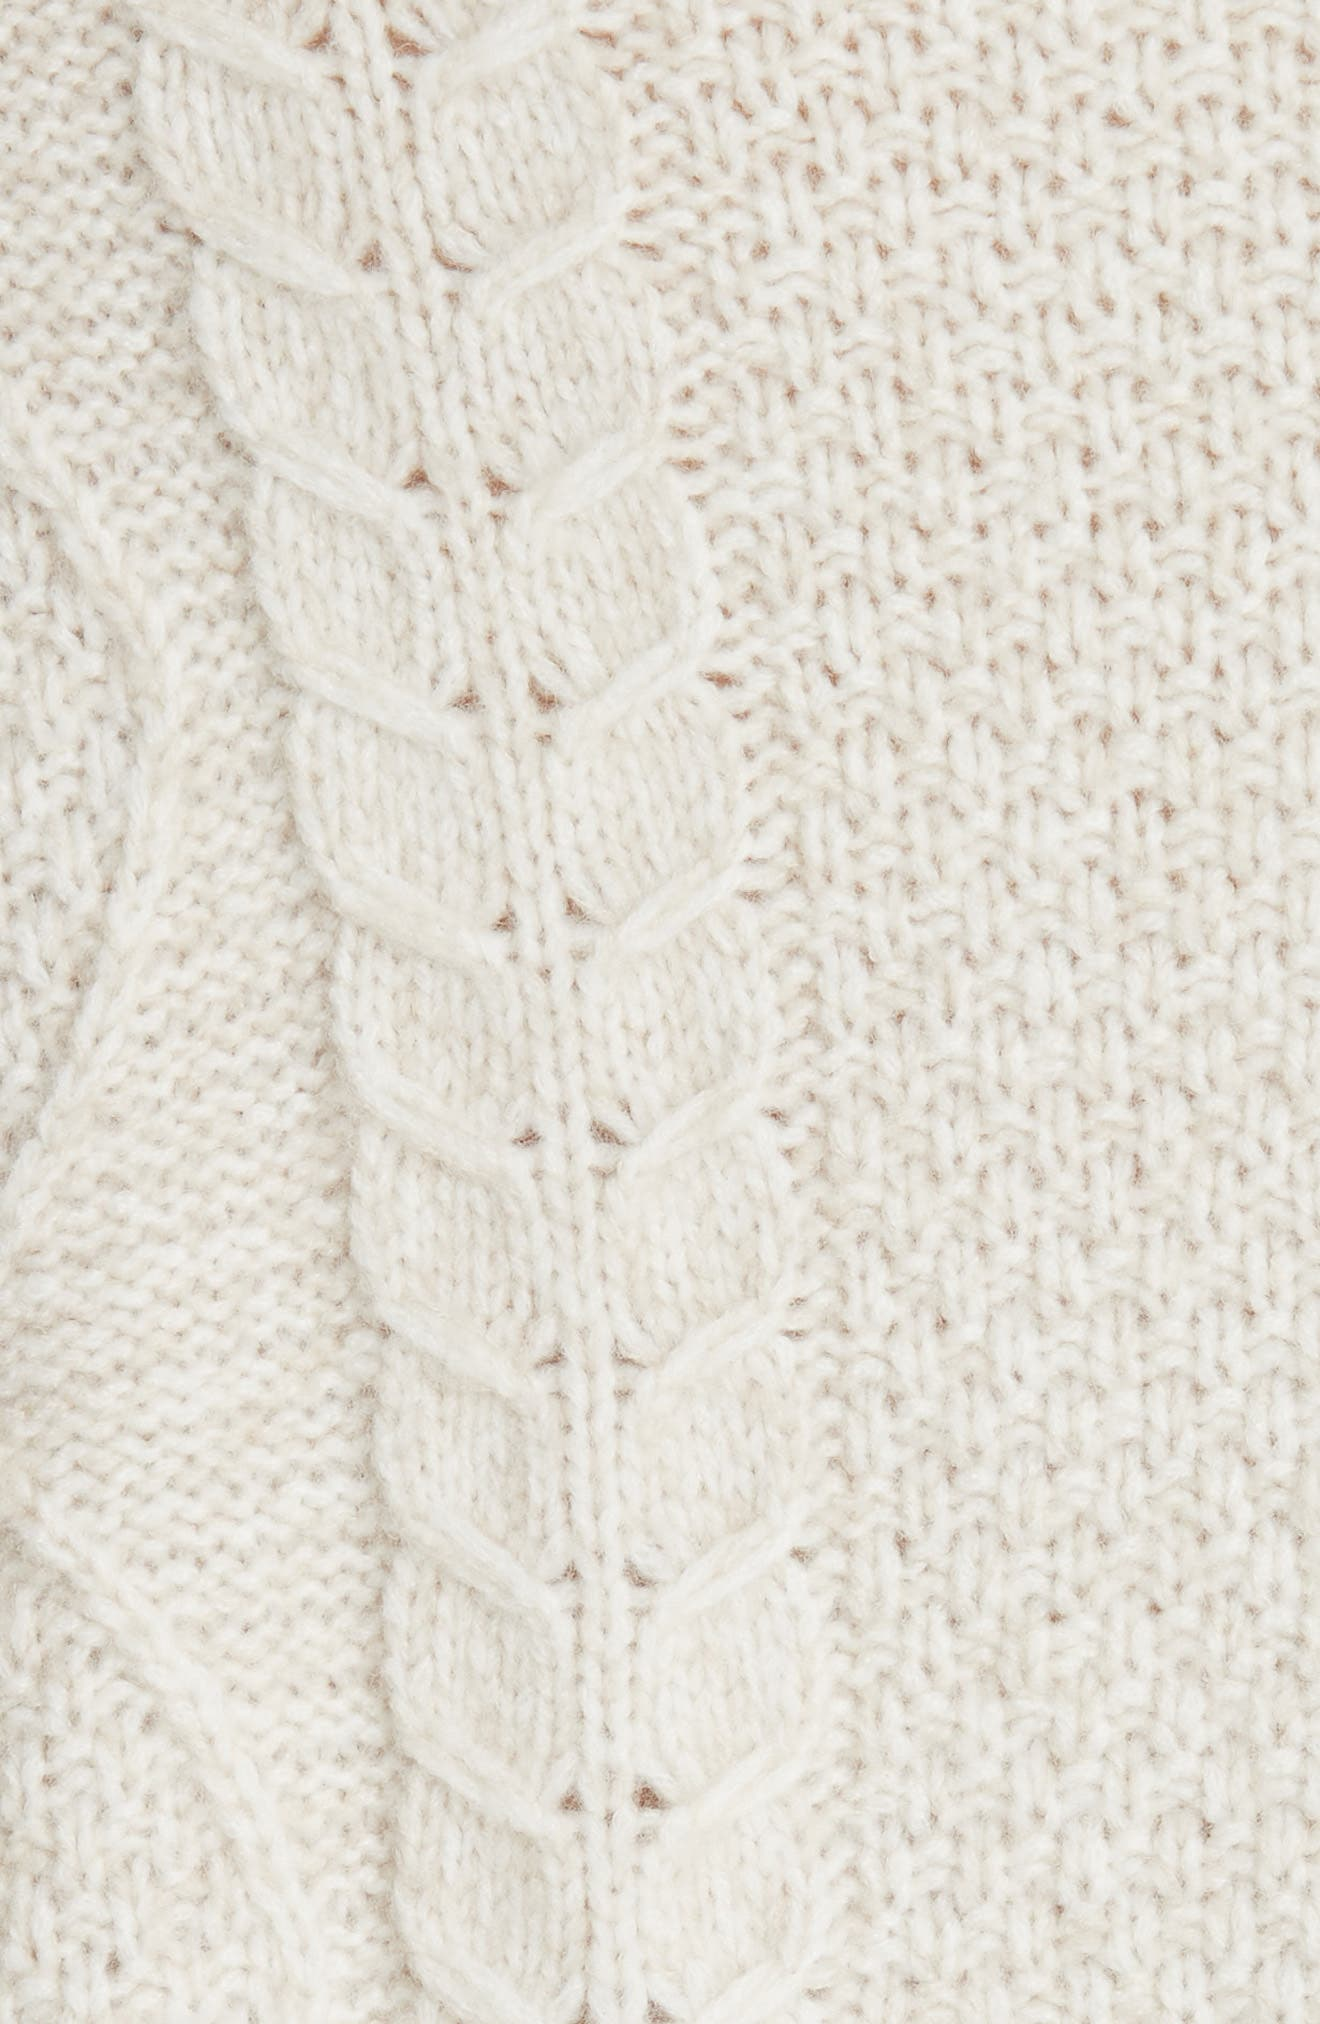 Wool & Cashmere Blend Cable Knit Sweater,                             Alternate thumbnail 5, color,                             901